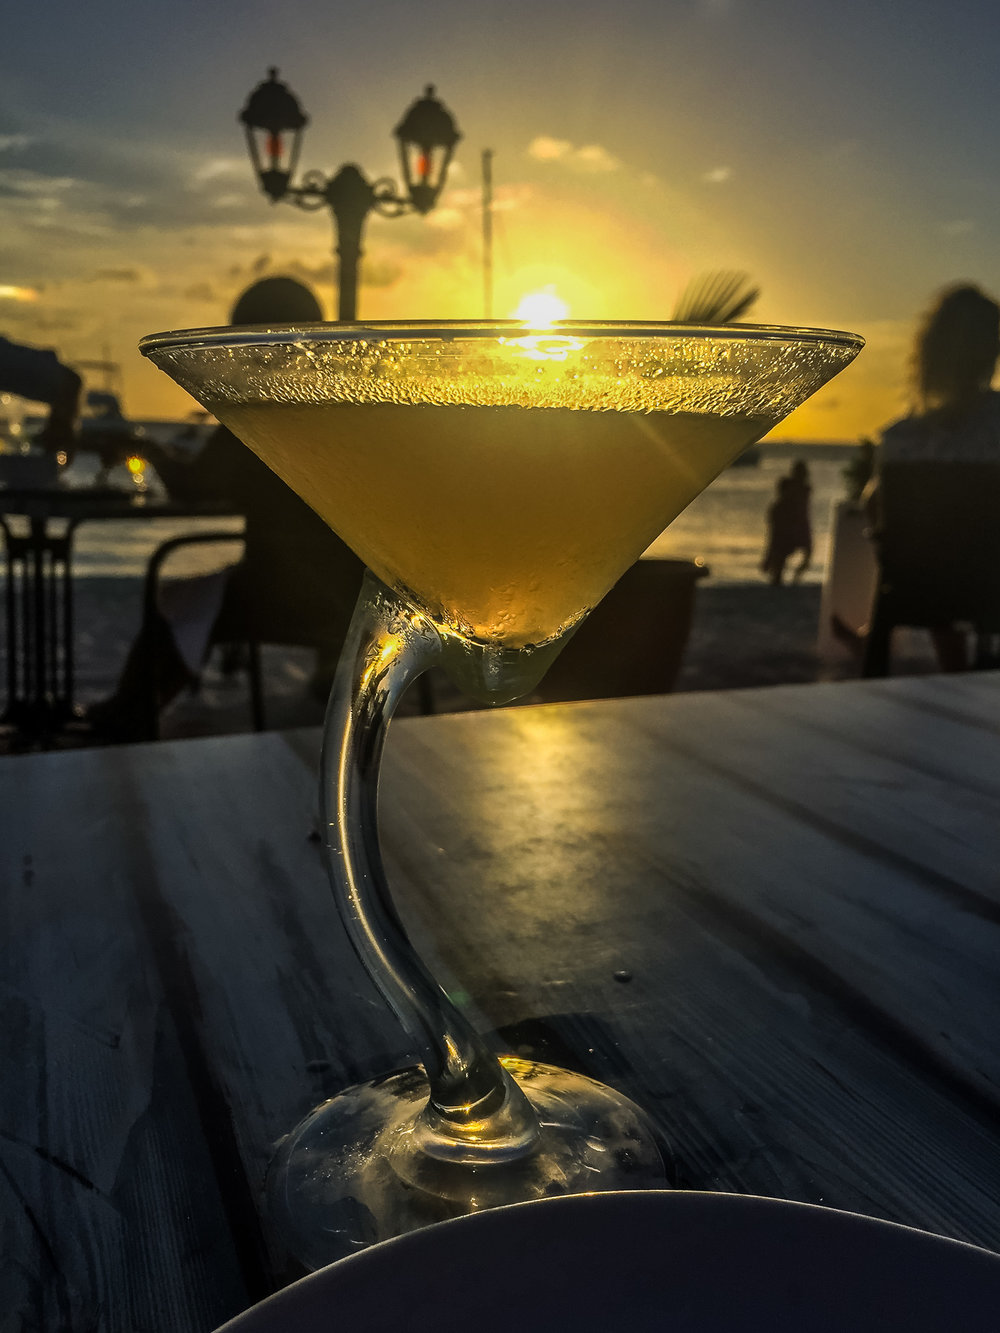 One of many sunset cocktails, at a one of Aruba's plethora of beach front restaurants - This particular one's name escapes me. But it was delicious and beautiful and perfect.